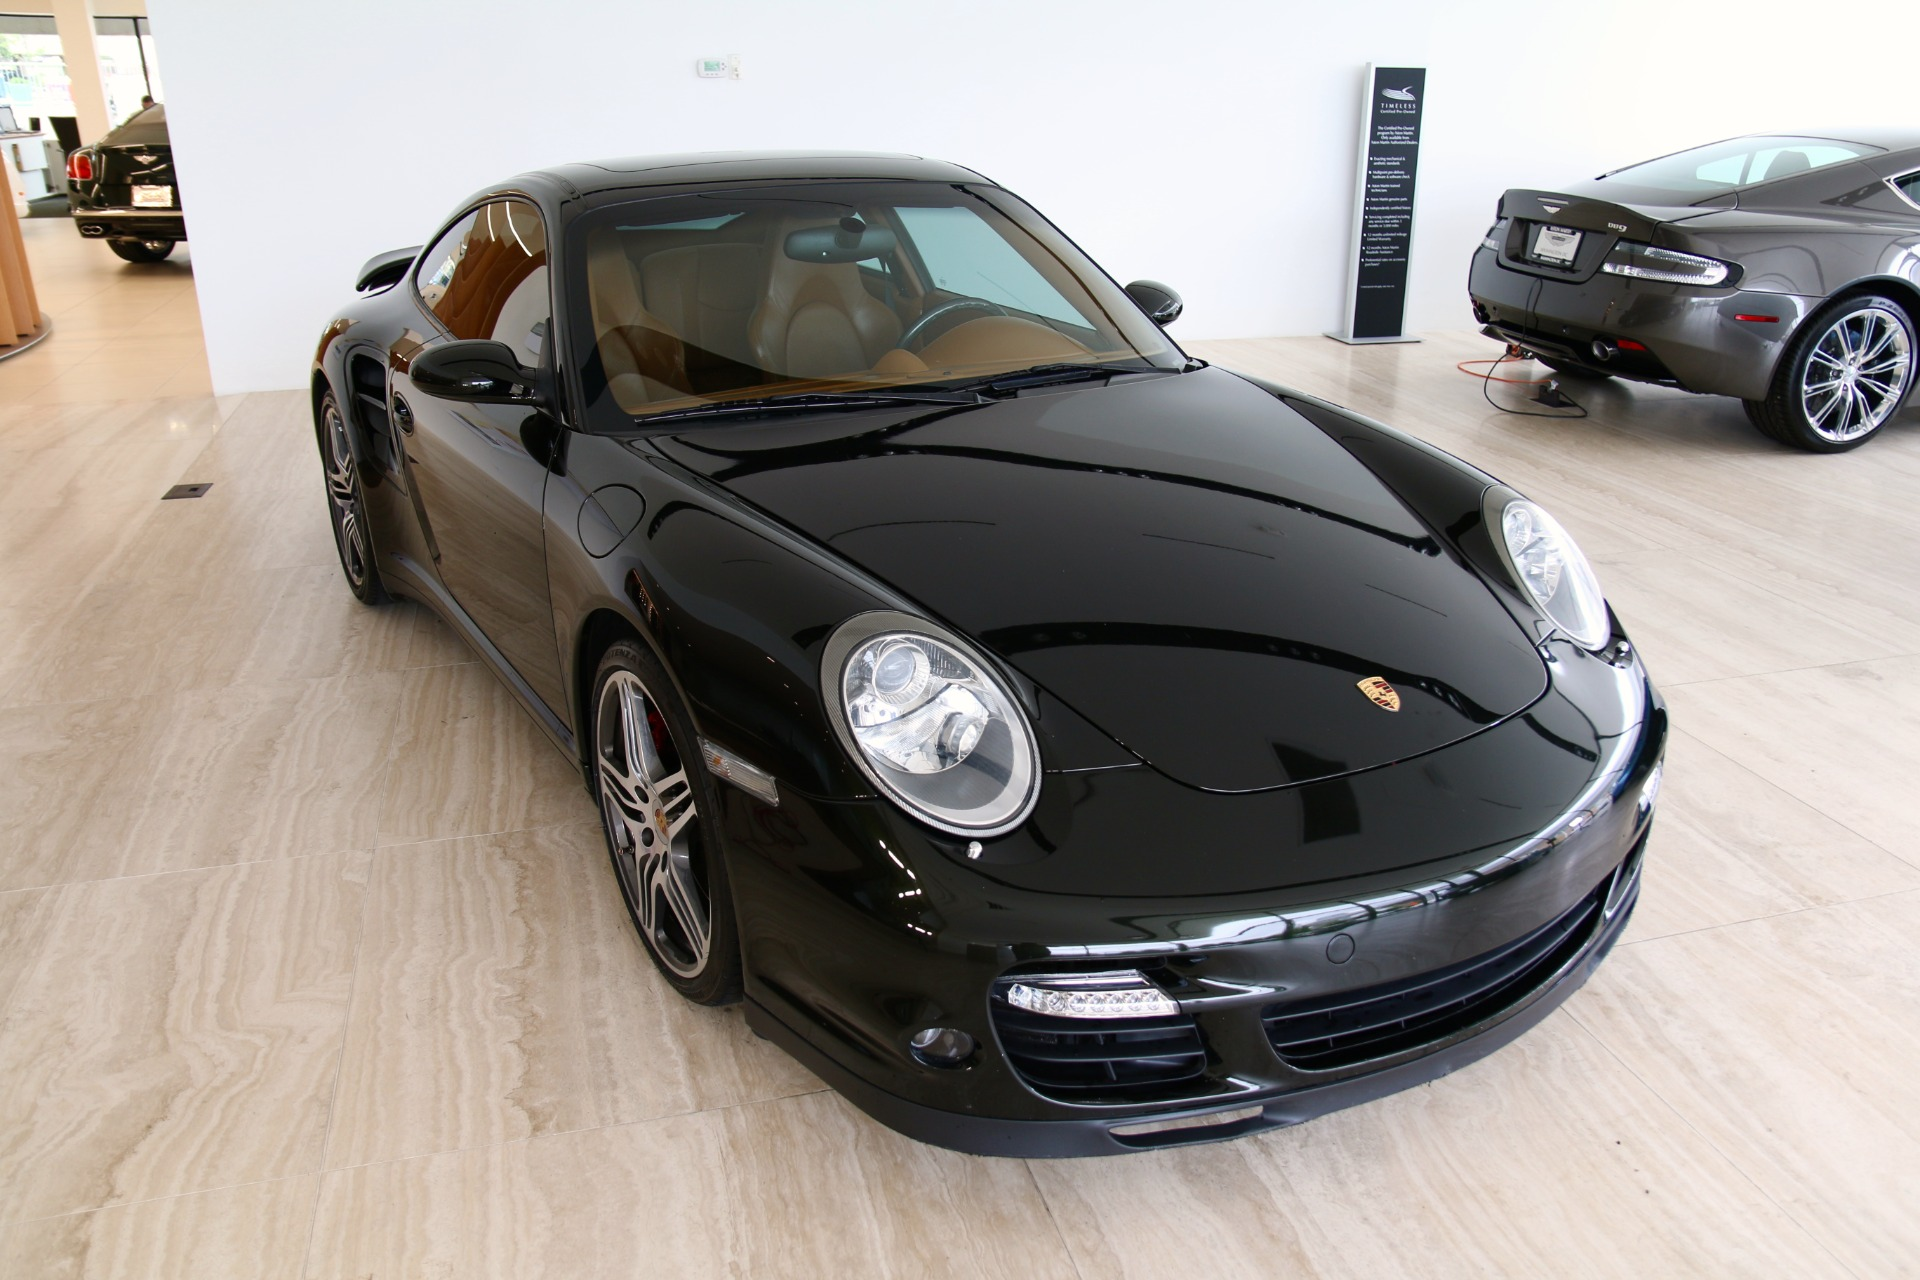 2007 porsche 911 turbo stock p84457 for sale near vienna. Black Bedroom Furniture Sets. Home Design Ideas